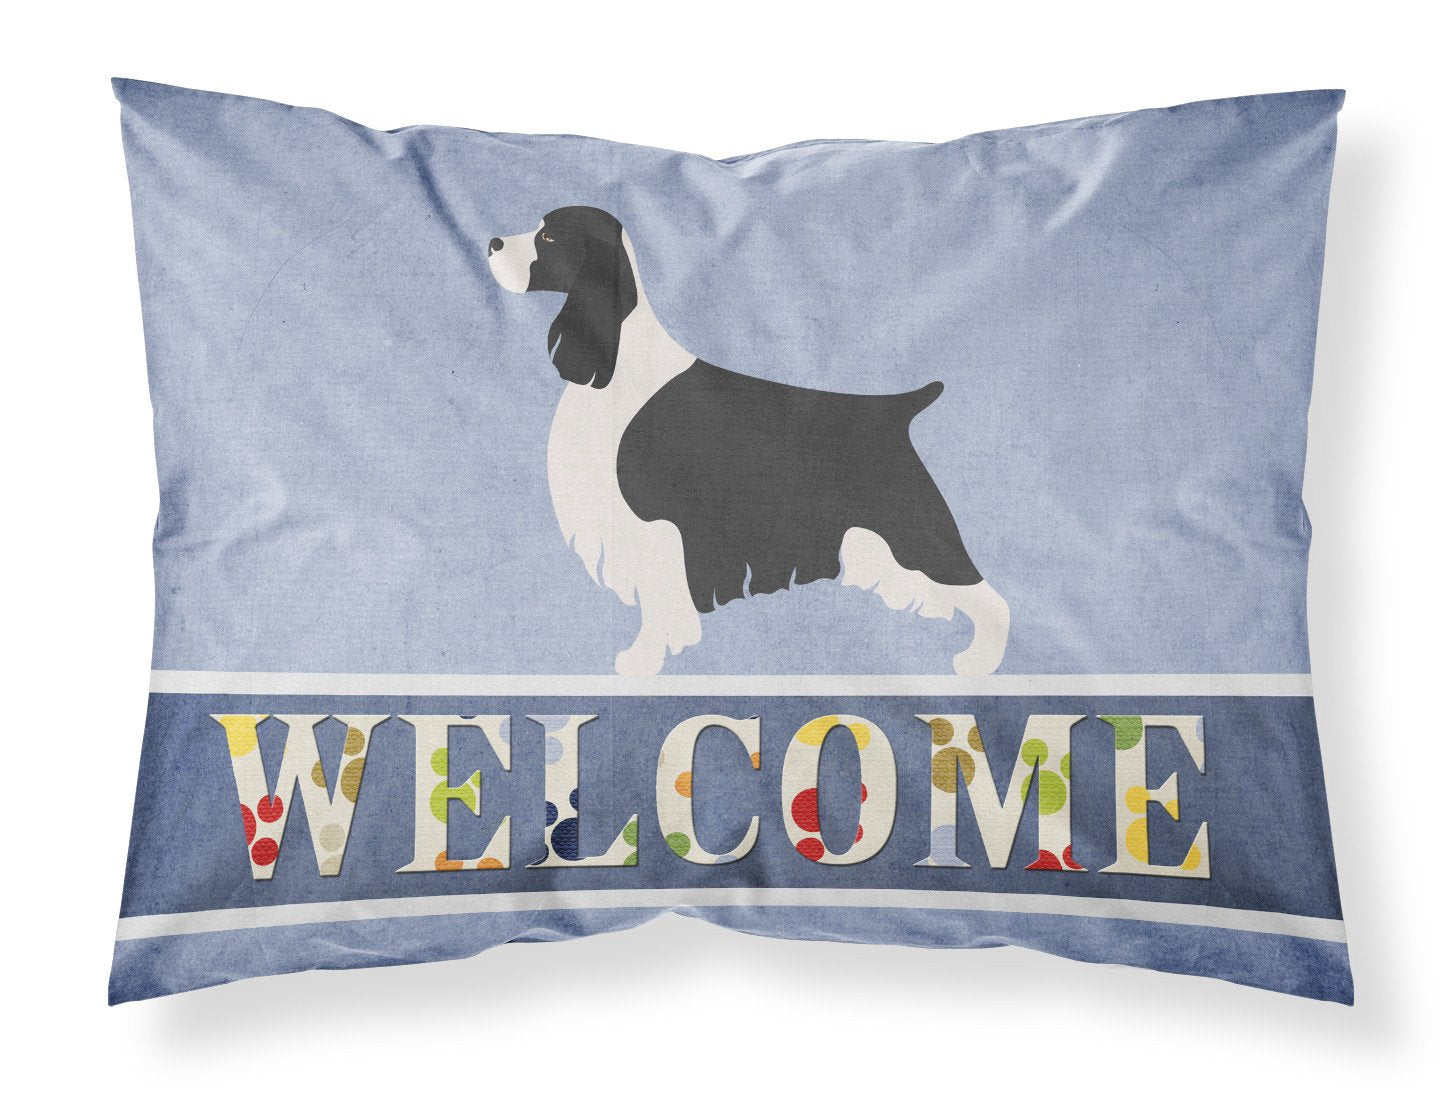 English Springer Spaniel Welcome Fabric Standard Pillowcase BB8273PILLOWCASE by Caroline's Treasures